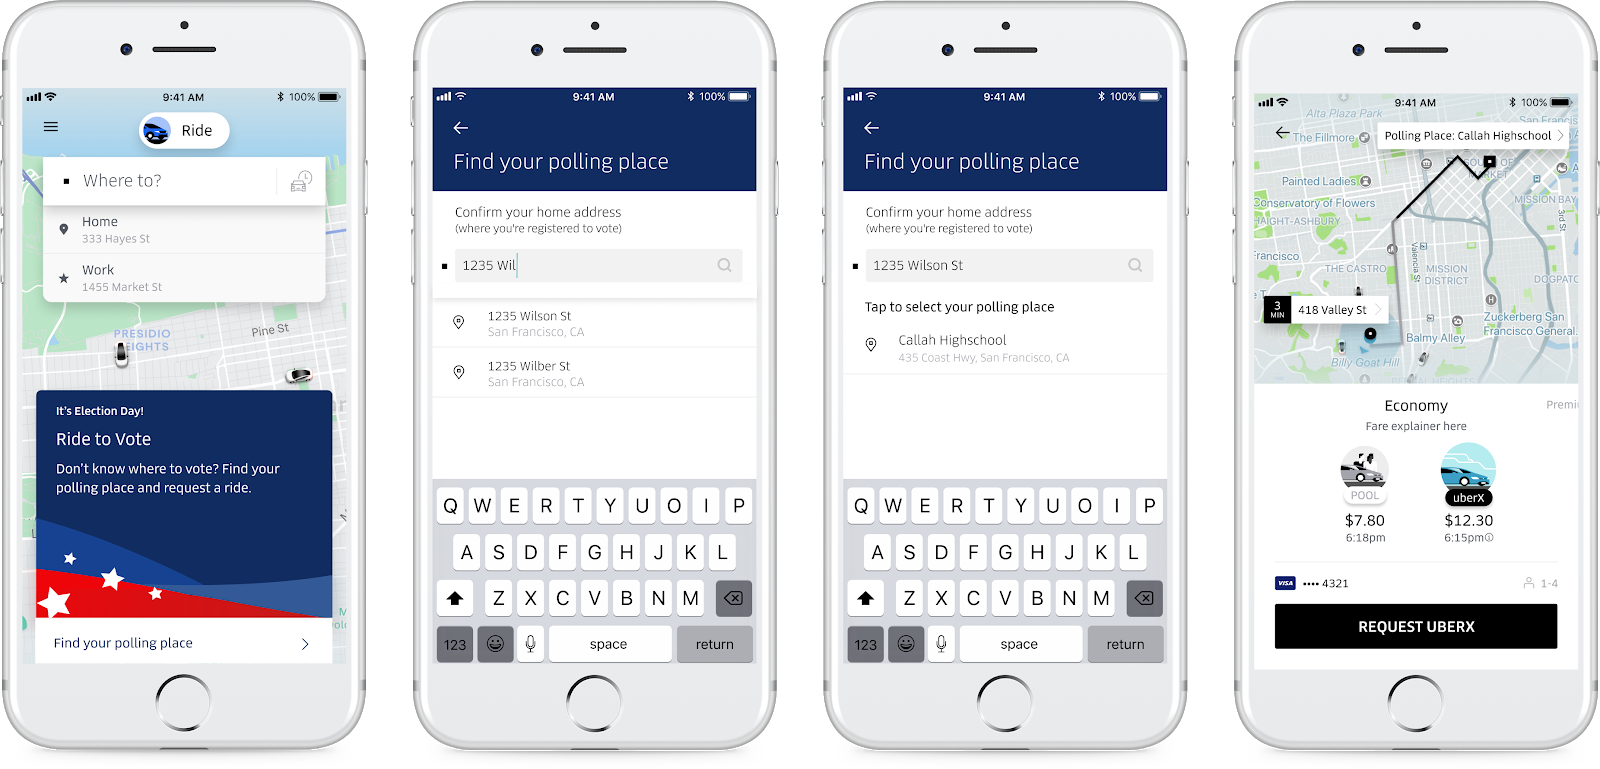 Uber will offer free rides to the polls on Election Day...